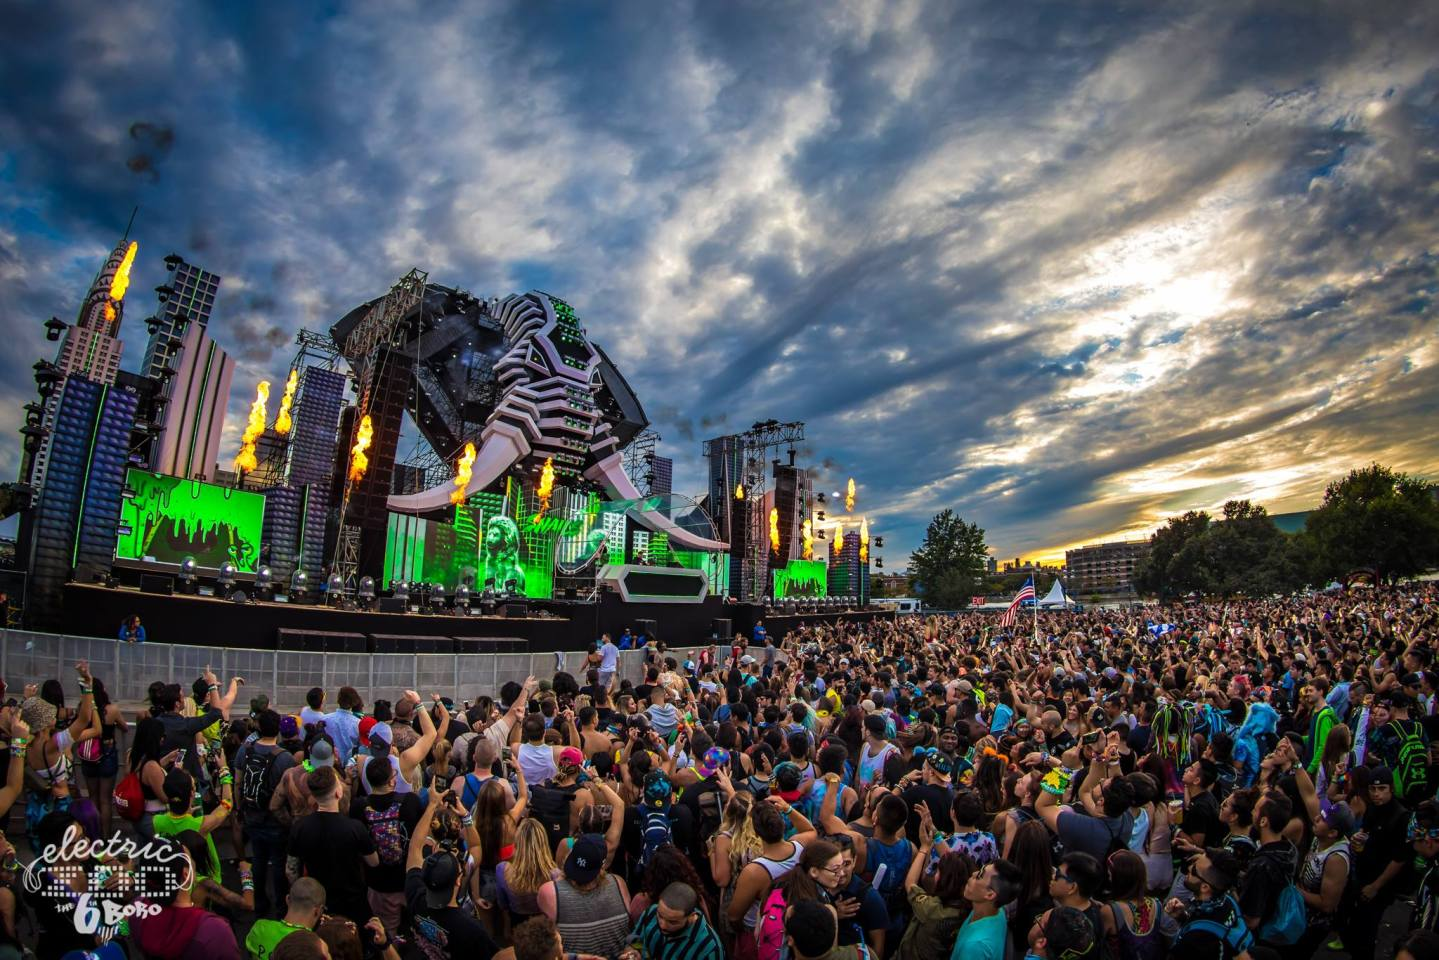 Electric Zoo is going global thanks to Made Event's partnership with ID&T